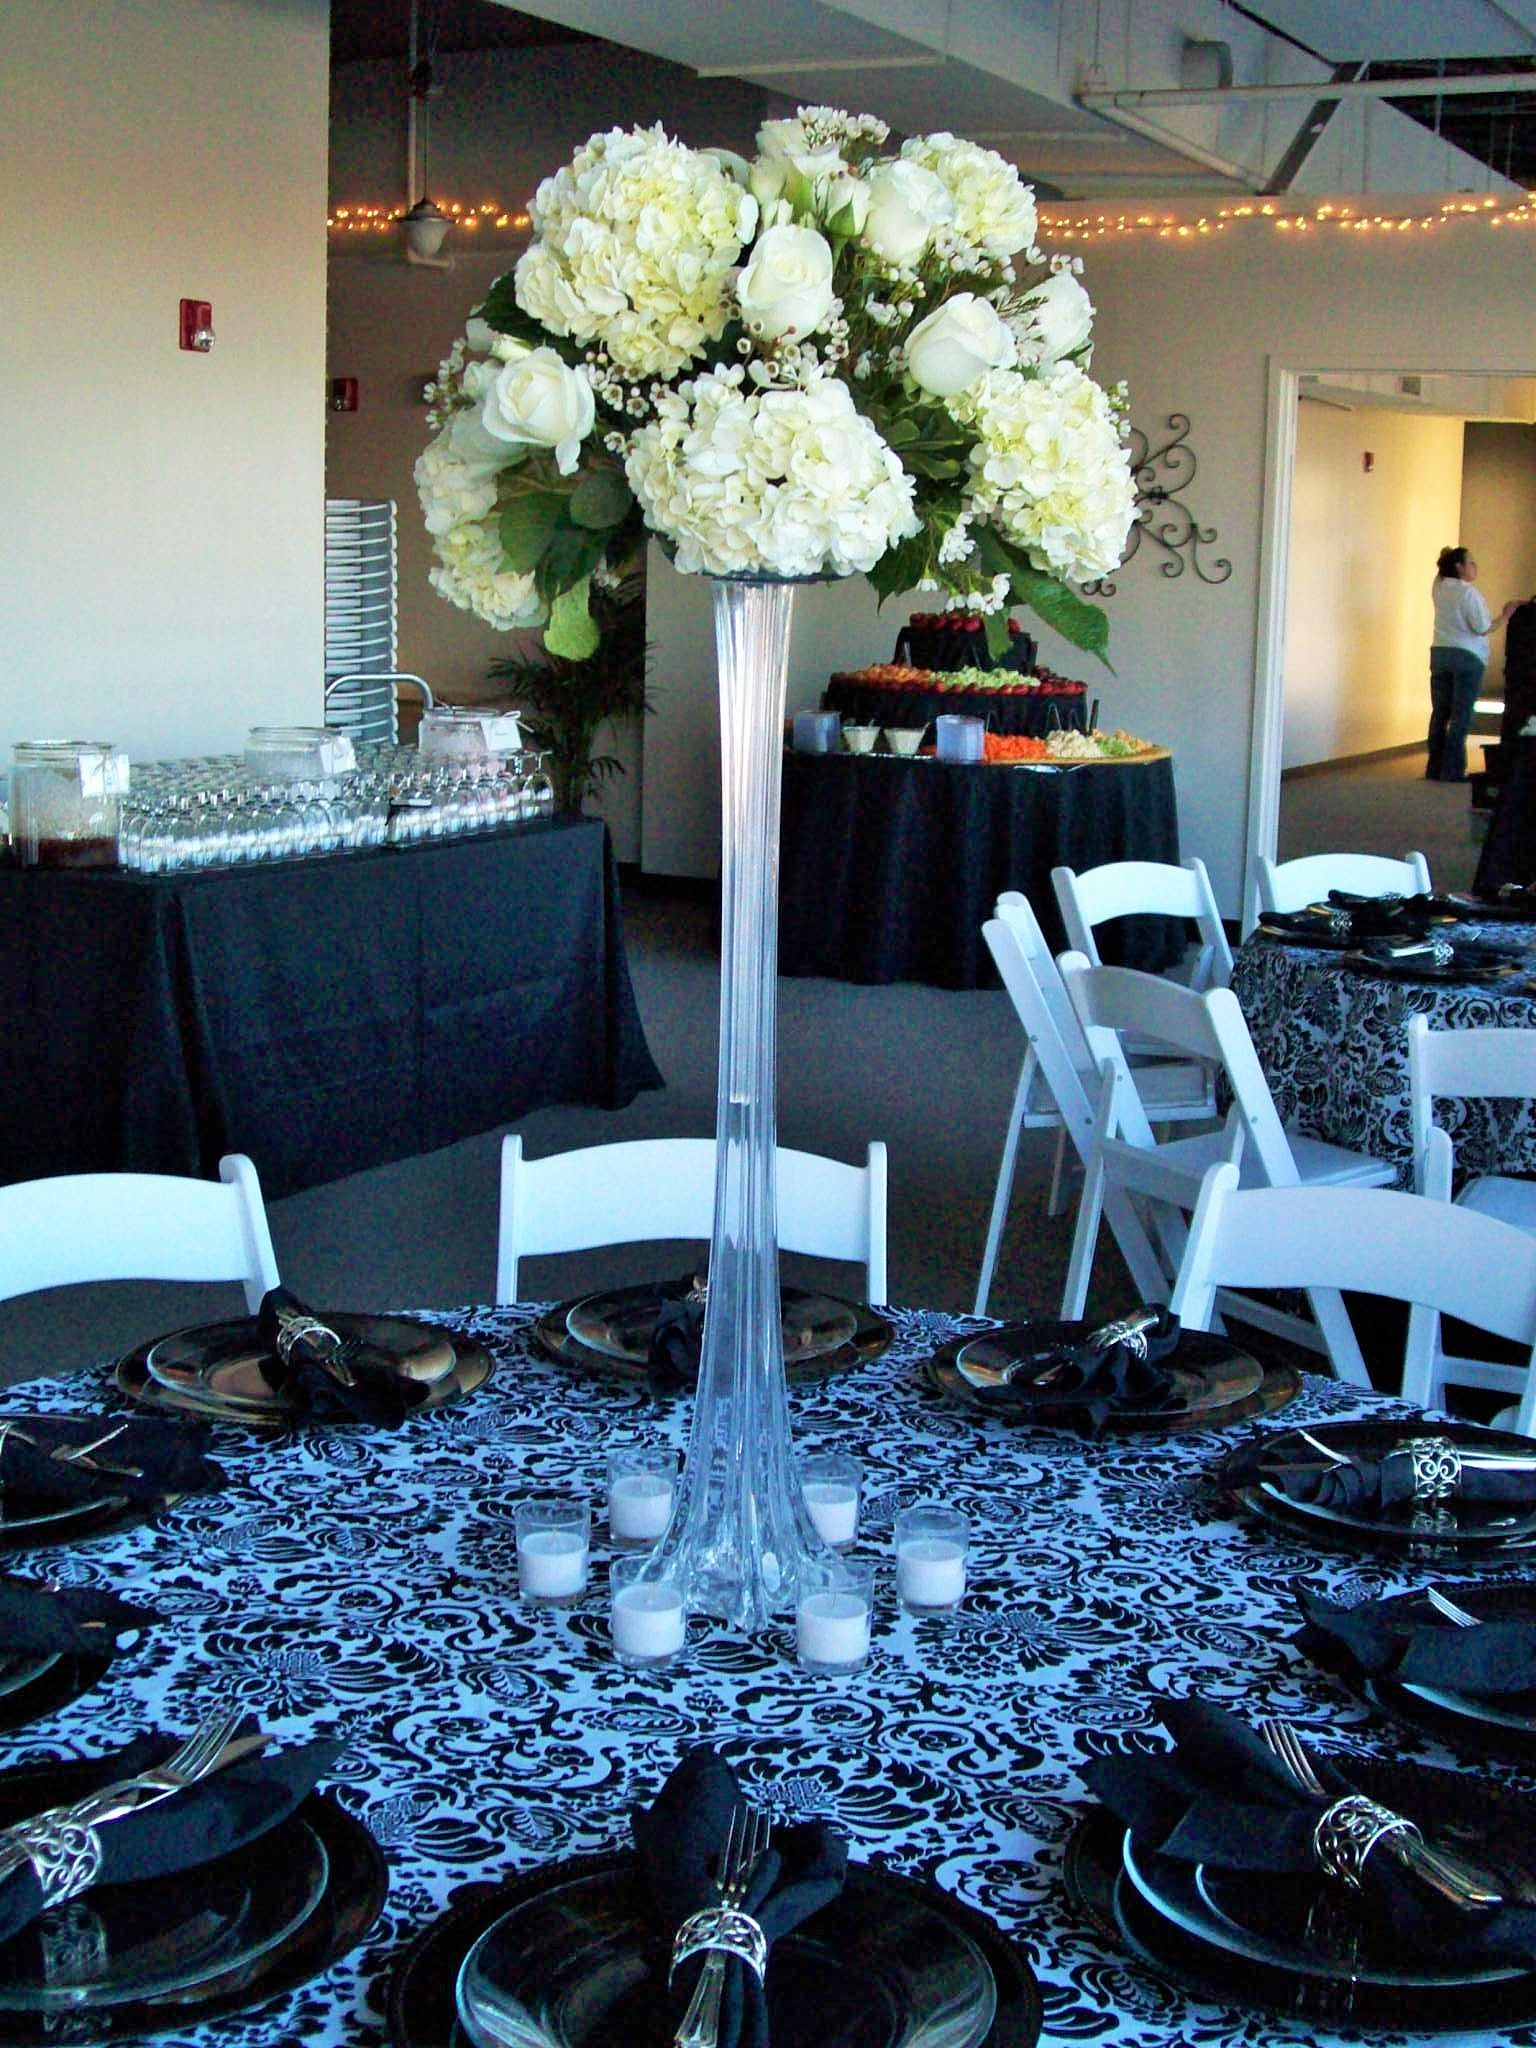 Tall Glass Vase Wedding Centerpiece with White Hydrangeas surrounded